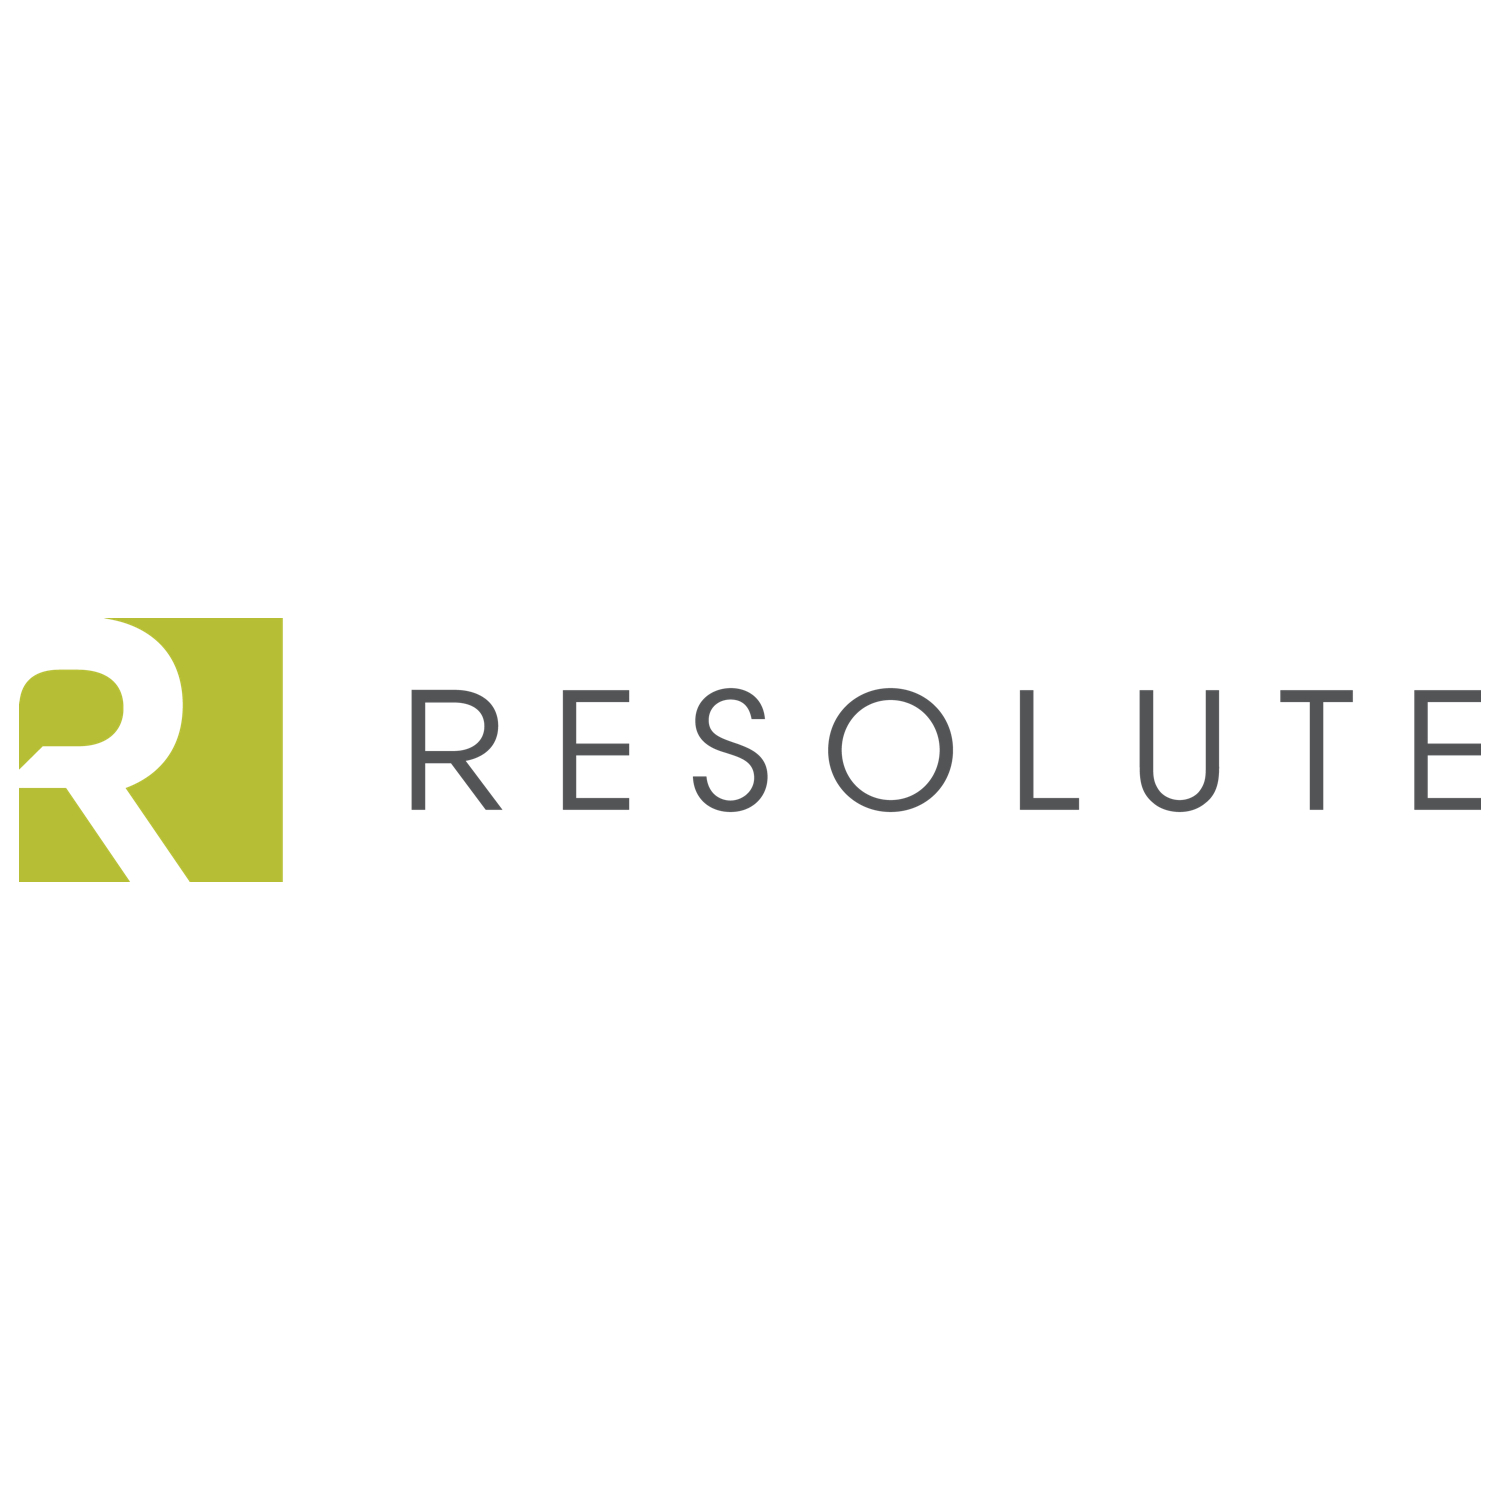 Resolute   Resolute is a full-service public relations, marketing and advertising agency. We built our firm on the principle that hard work, consistency, determination and devotion to our clients is the formula for success. The Resolute team is not just devoted to superb services, but is committed to high levels of integrity, professionalism, respect, dependability and creativity.